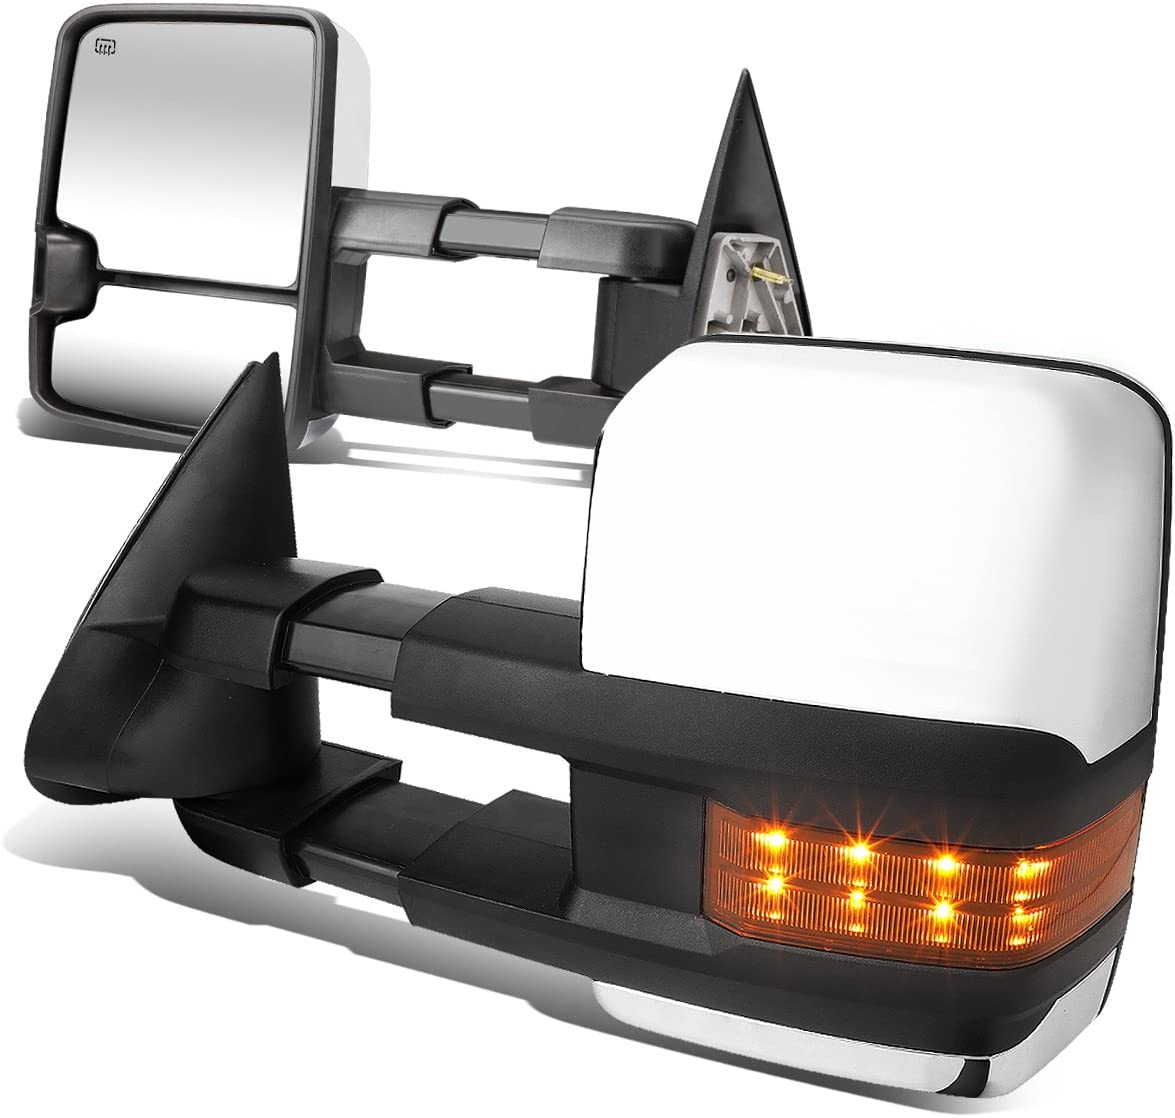 Driver And Passenger Sides DNA MOTORING TWM-015-T999-CH-AM Pair Of Towing Side Mirrors